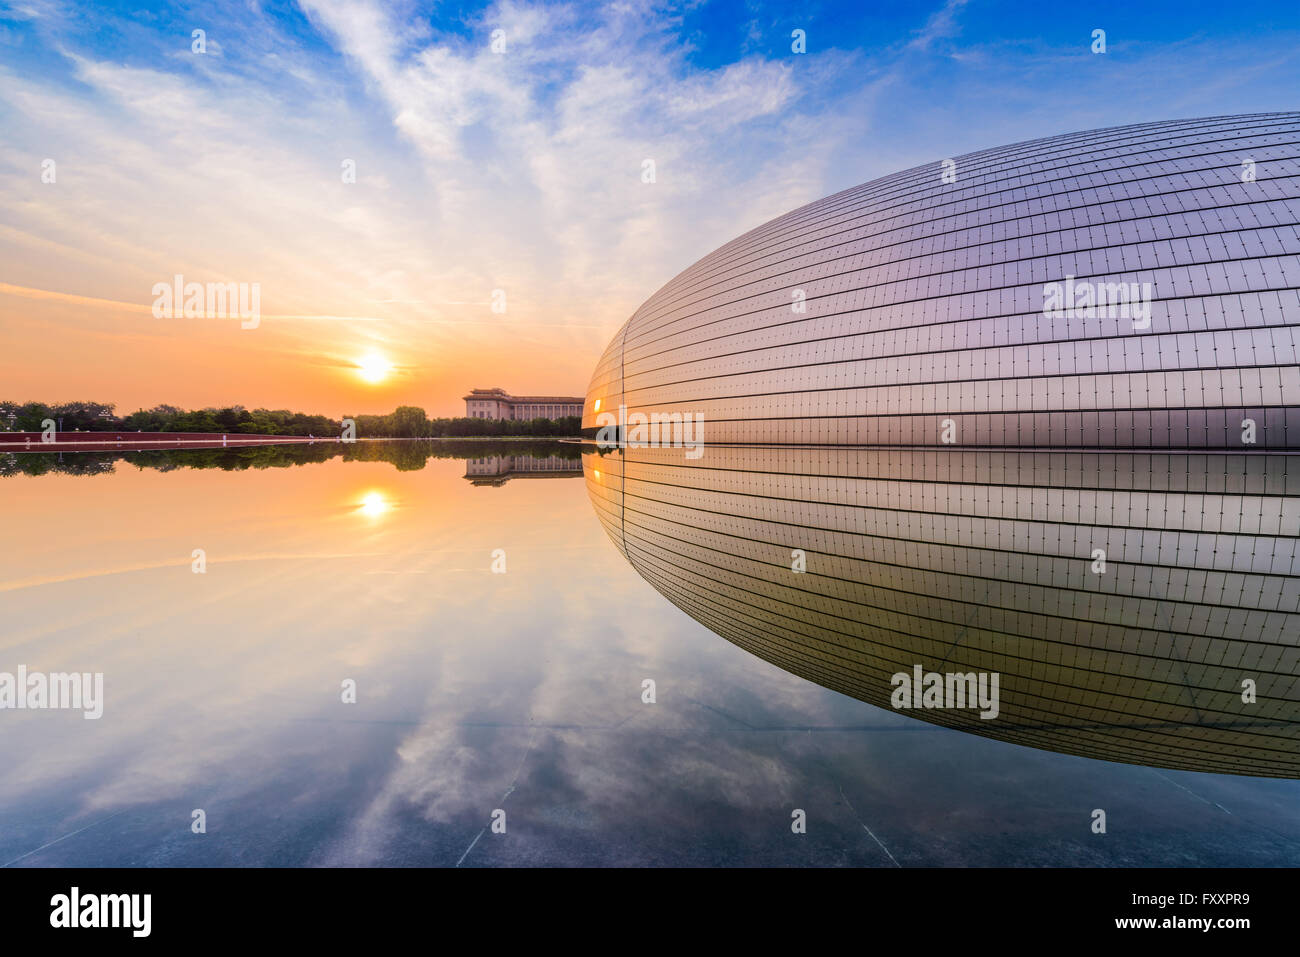 National Centre for the Performing Arts in Beijing, China. - Stock Image